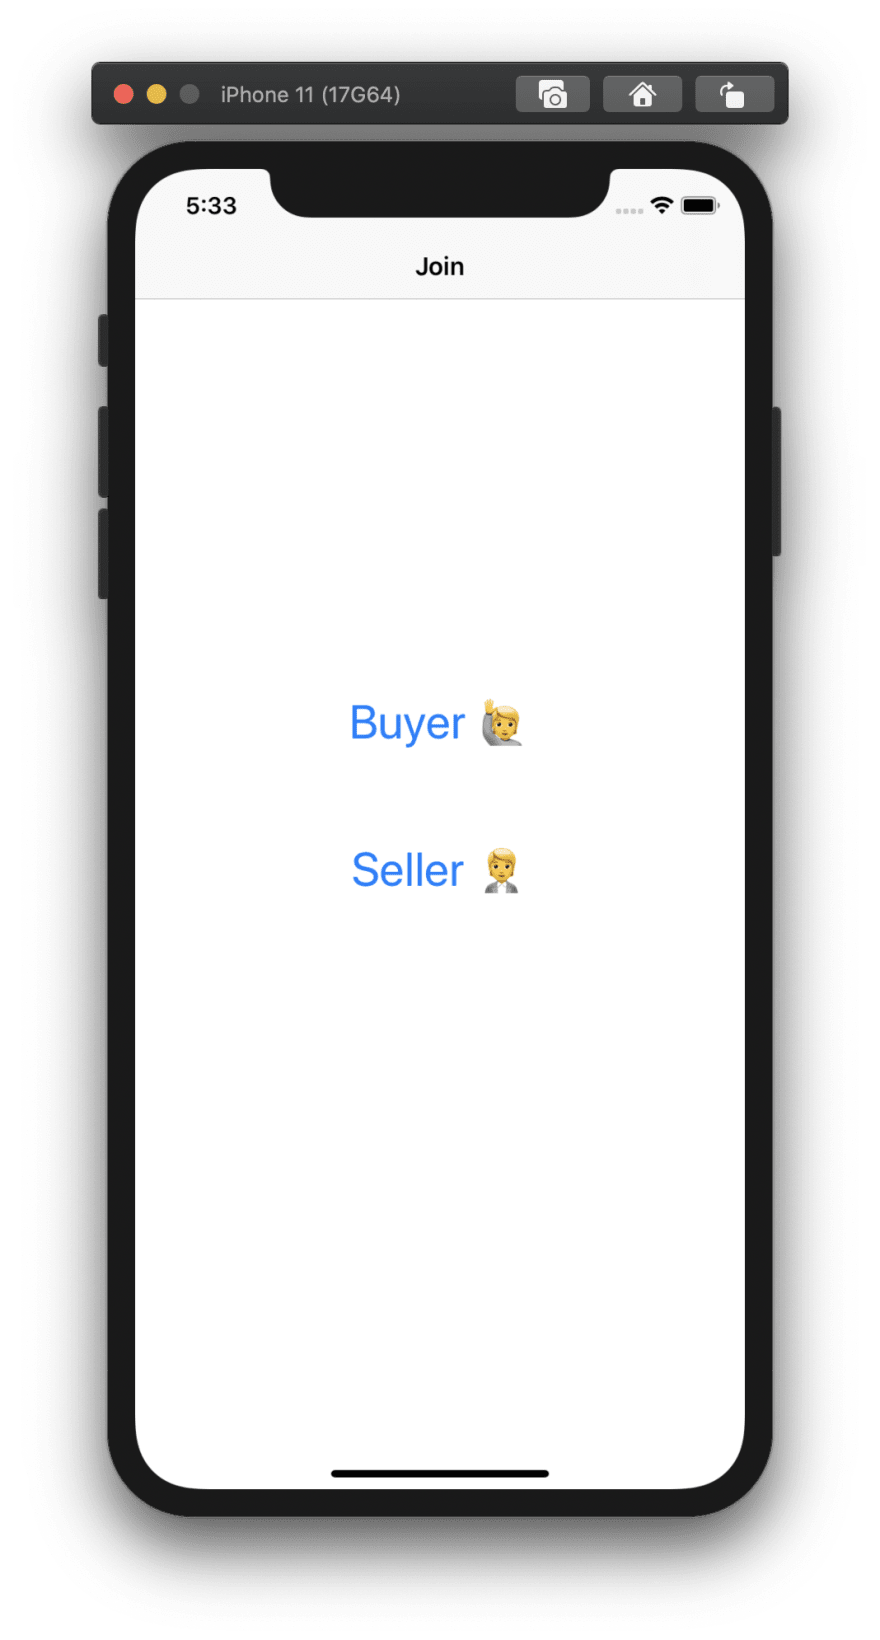 Screenshot shows an app with two buttons, one to join as a buyer, and the other to join as the seller